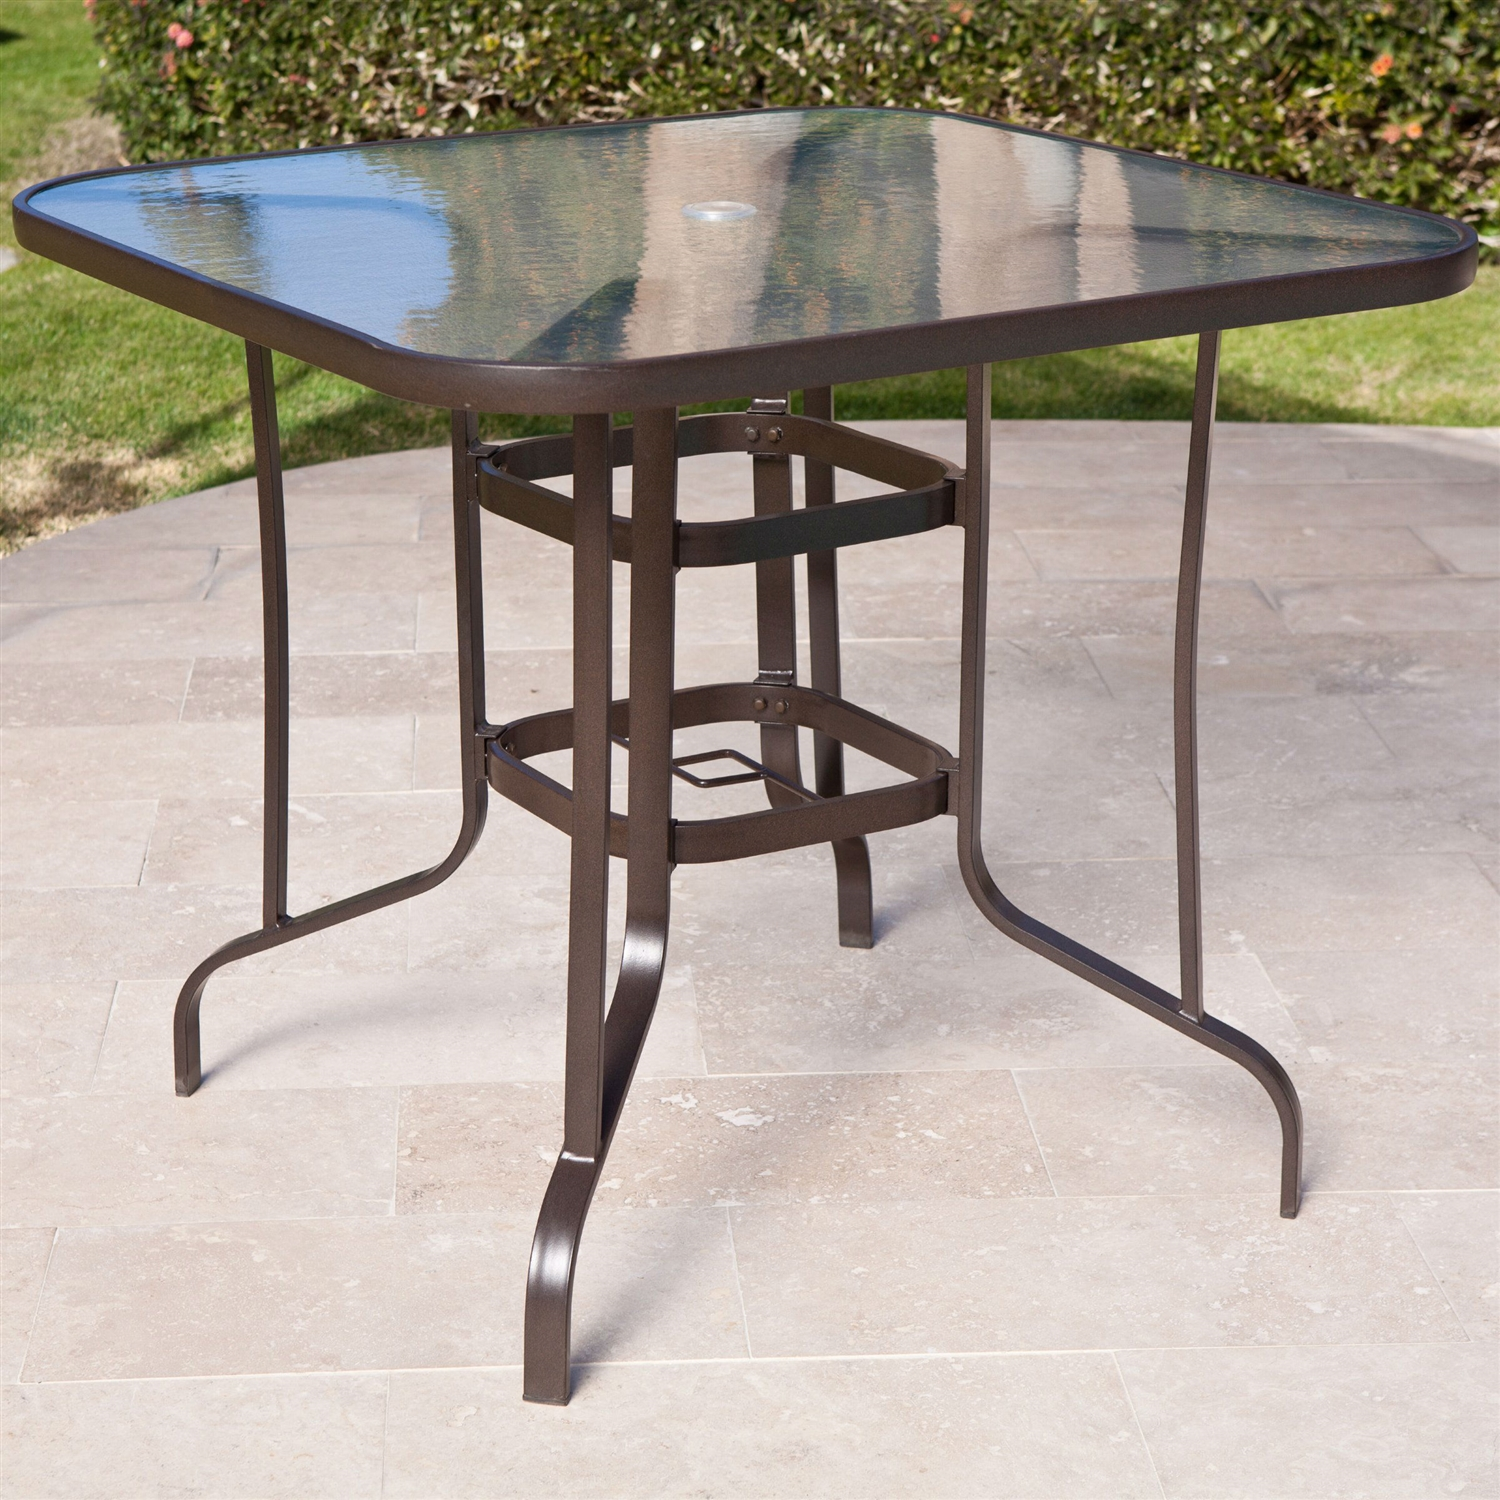 40 Inch Outdoor Patio Dining Table With